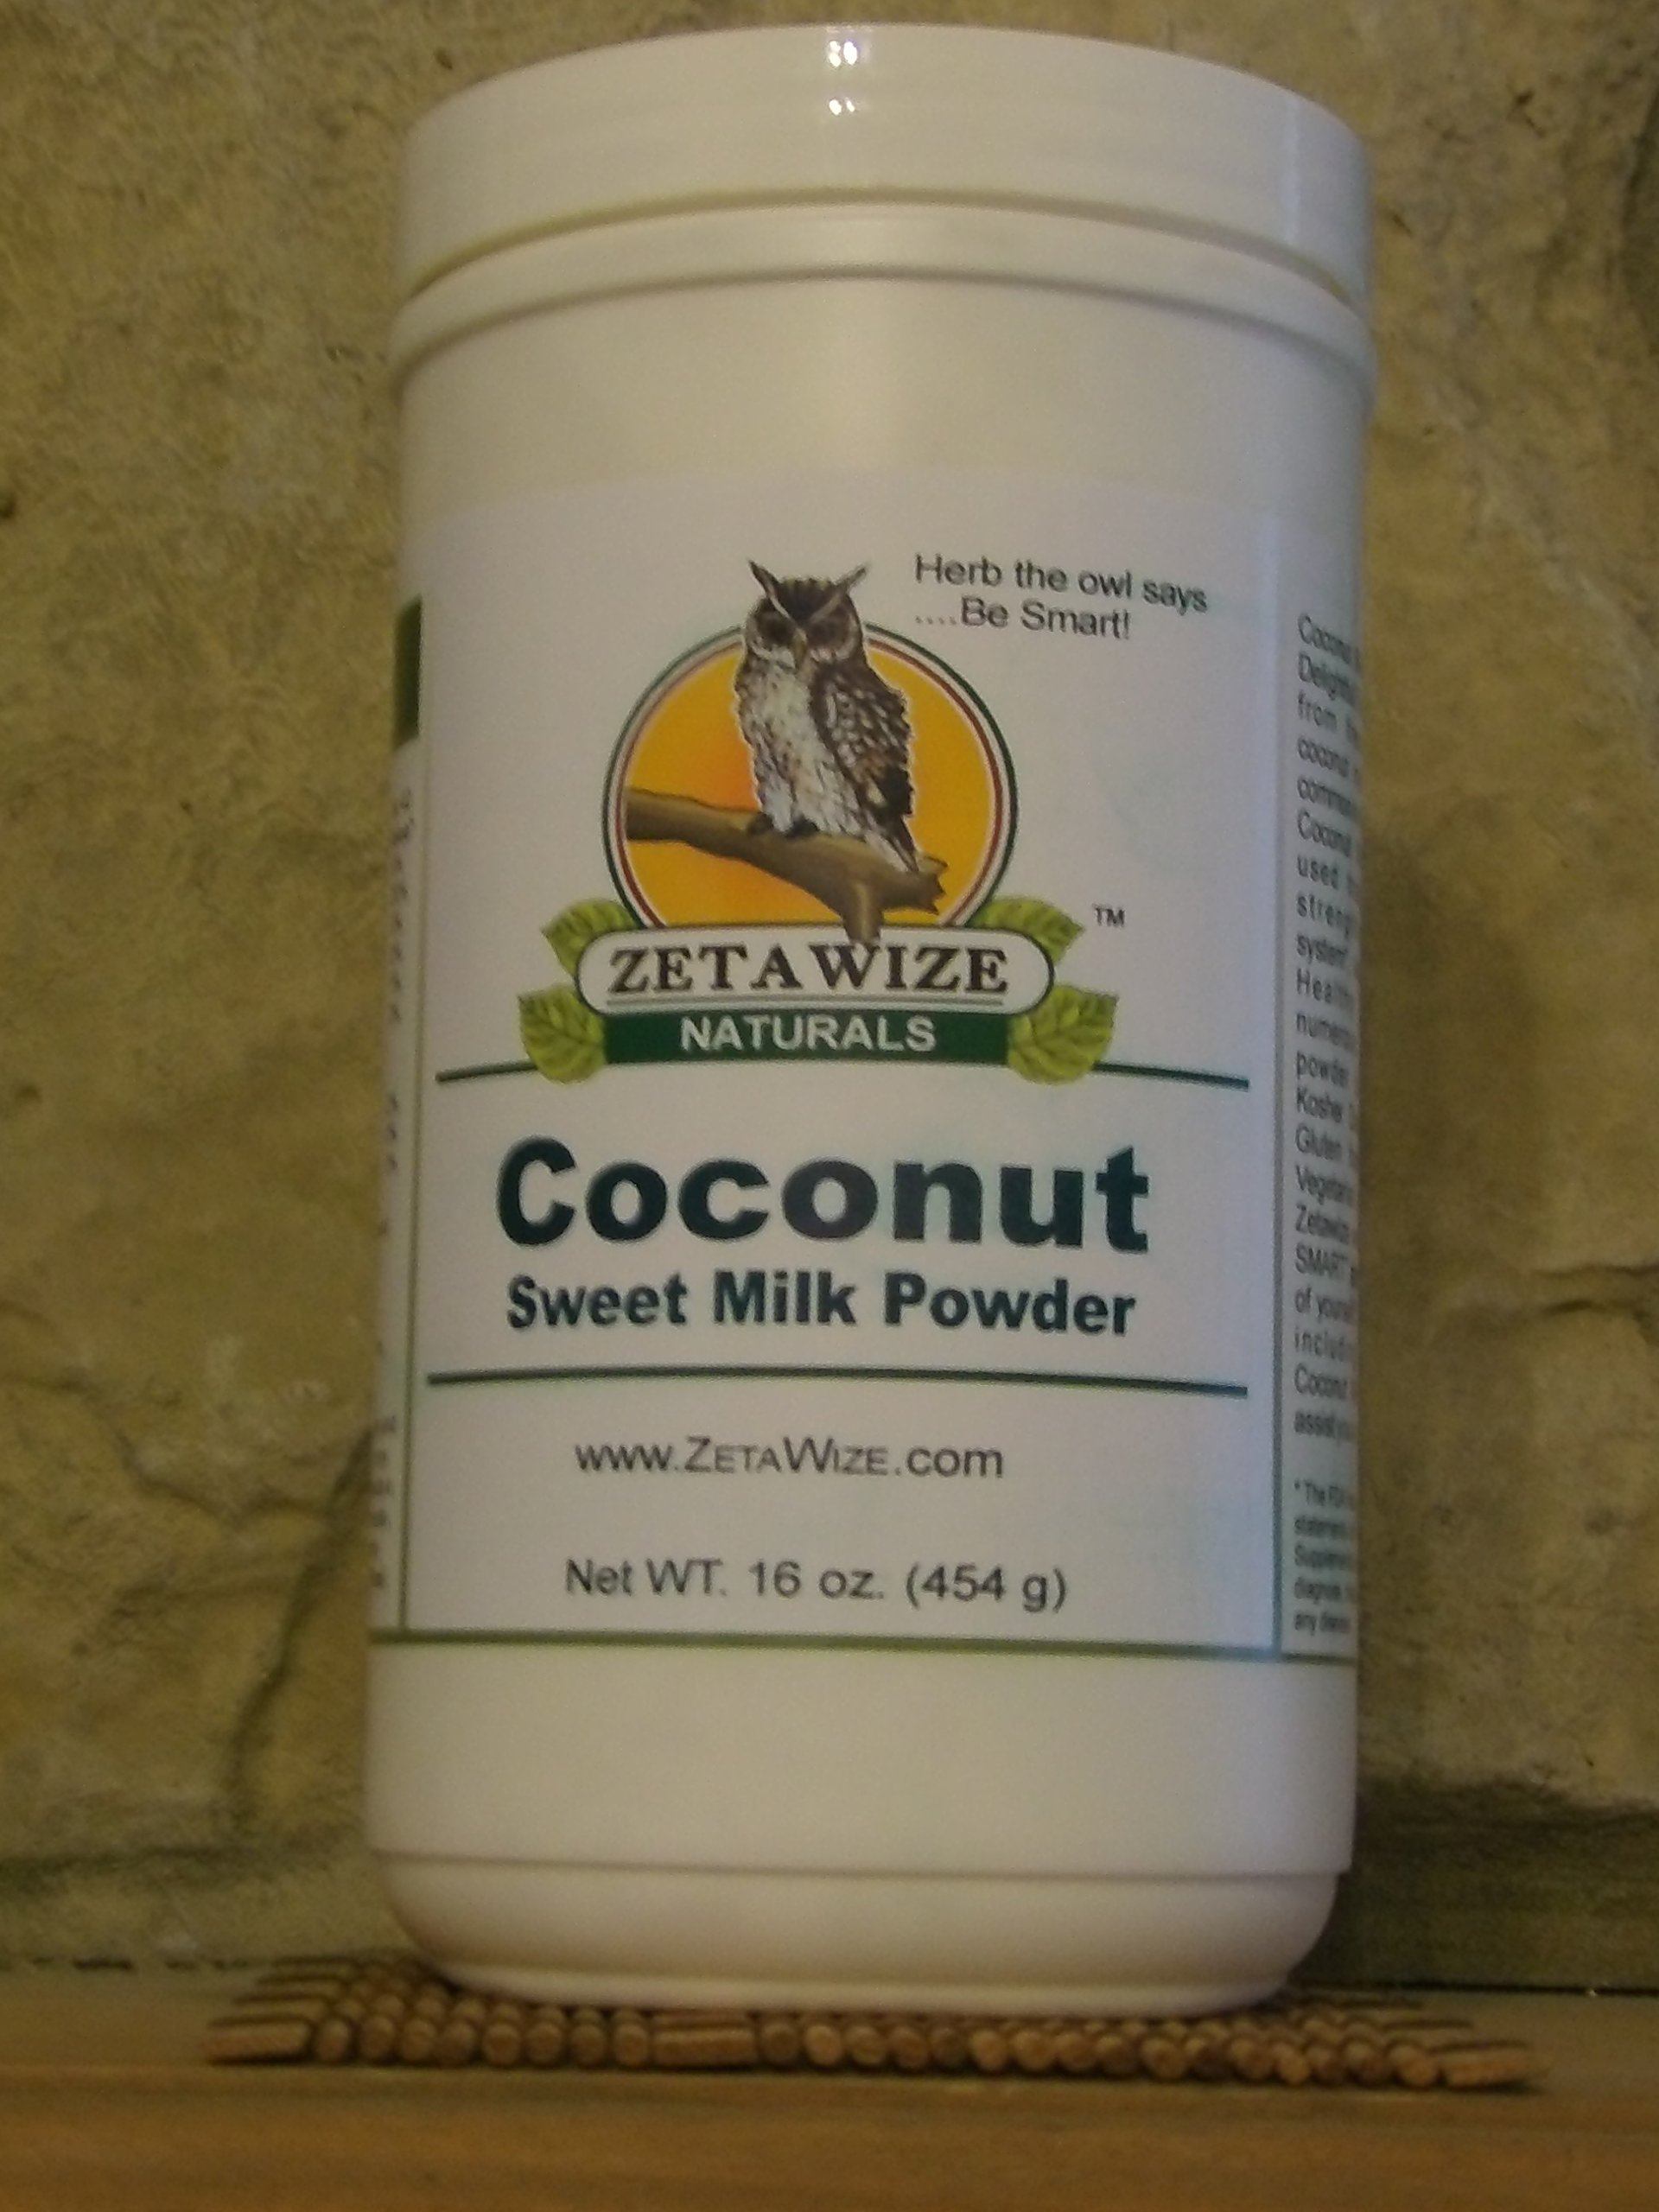 Coconut Sweet Milk Powder *Delicious * Supplement or Healthy Recipe Enhancer * Kosher * Gluten Free * Lacto - Vegetarian Grade * Super-Food * 1 LB Size by Better Living Products a ZetaWize LLC Company